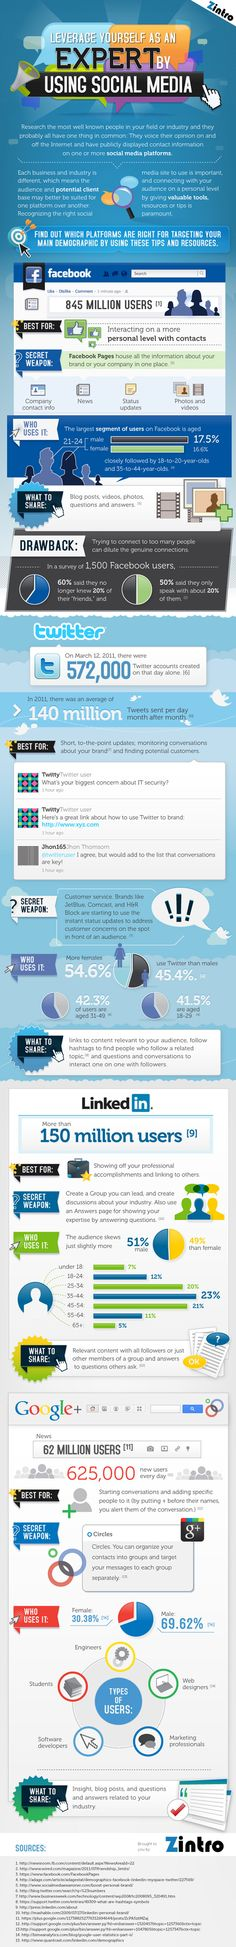 When and how to use social media – choosing the right platform for the job  #infographic  #social media